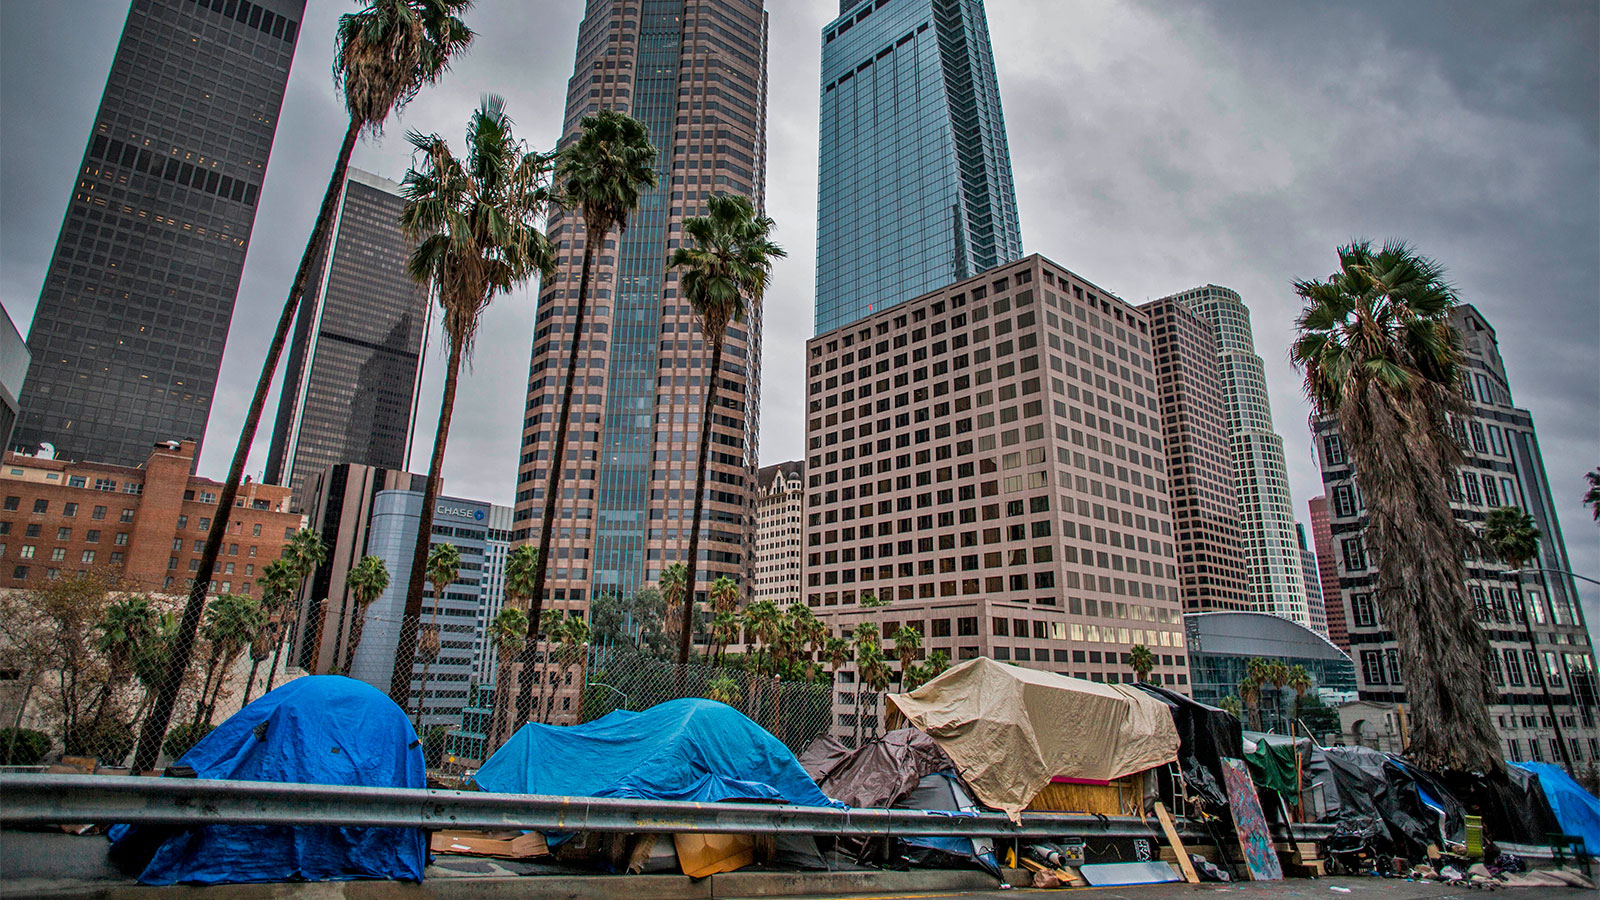 A row of homeless tents in front of tall building in downtown Los Angeles.